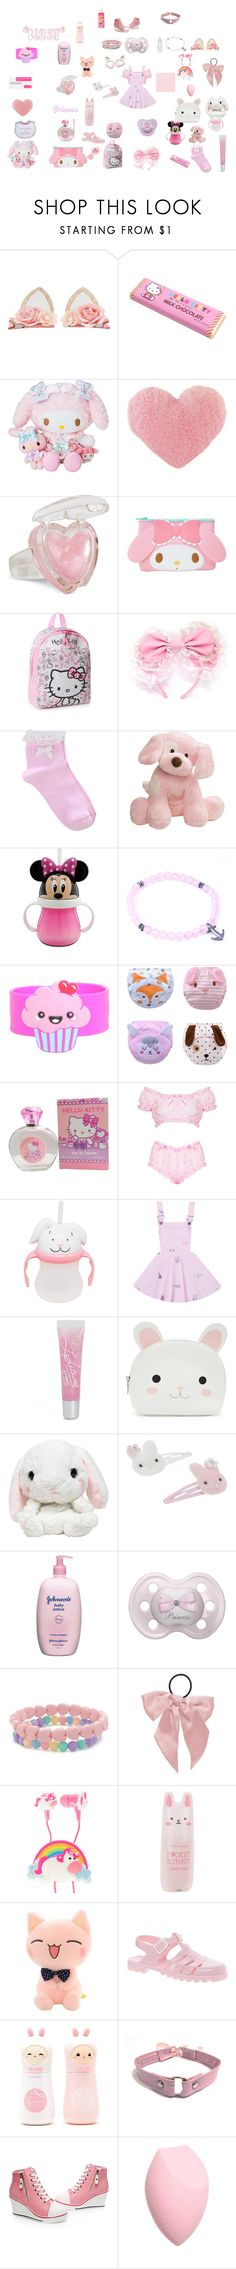 """ddlb"" by unicorn-923 ❤ liked on Polyvore featuring Monsoon, Hello Kitty, Oasis, Gund, Disney, Anchor & Crew, INC International Concepts, Forever 21, Johnson's Baby and L. Erickson"